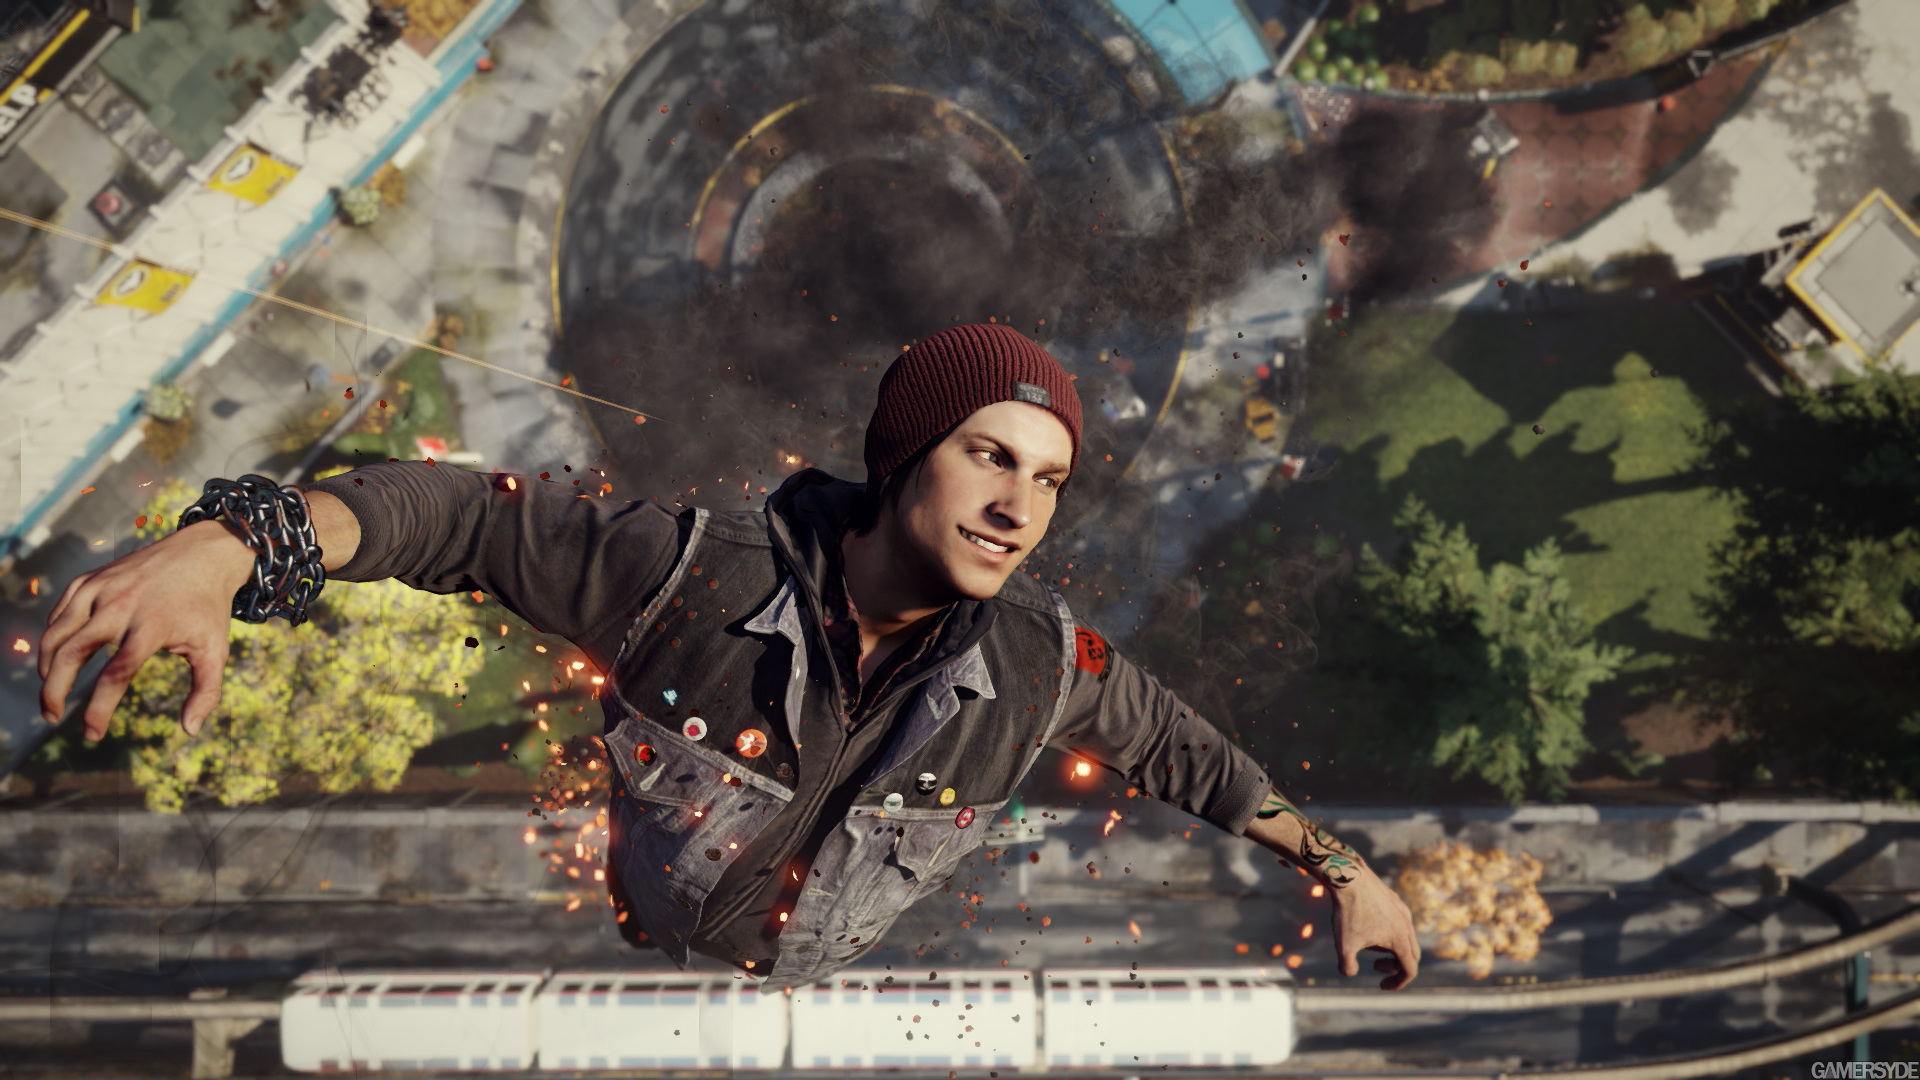 image_infamous_second_son-22674-2661_000